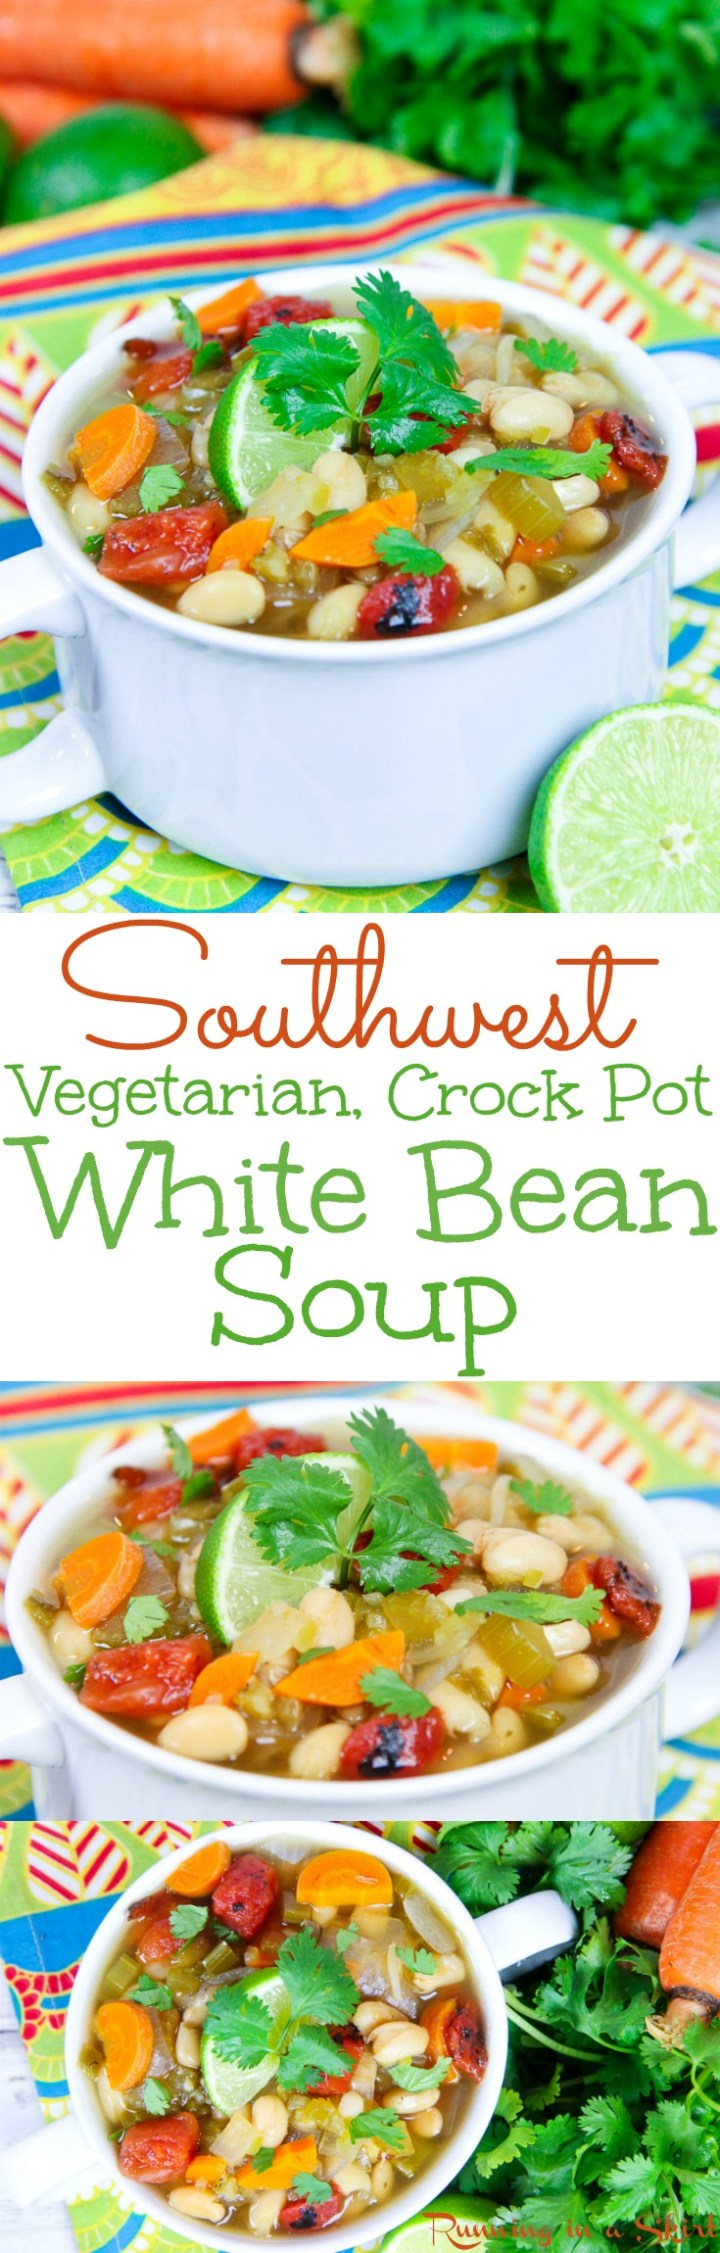 Crock Pot Southwest Vegetarian White Bean Soup recipe. Healthy, meatless and packed with veggies for the perfect vegan comfort foods. Uses salsa. Easy, simple and made in the slow cooker!  Gluten free / Running in a Skirt  via @juliewunder